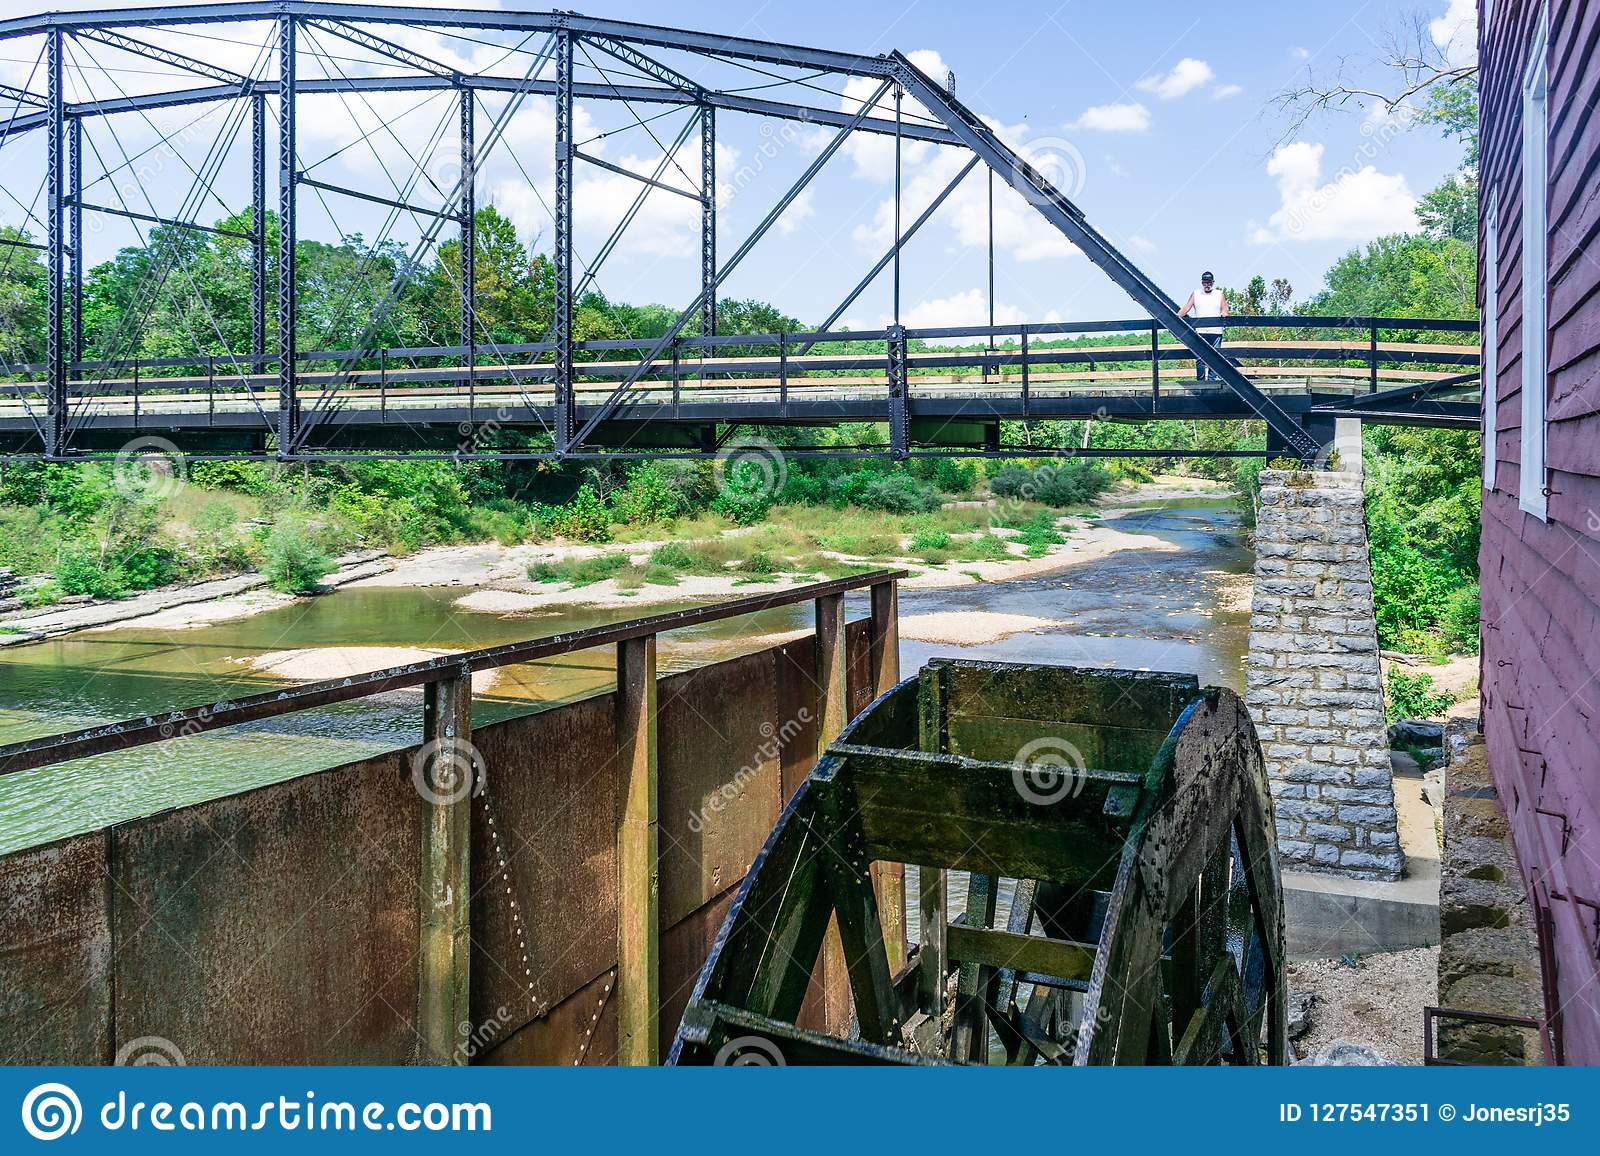 Standing on the historic War Eagle Bridge in Rogers, Arkansas one can see the working water wheel powered by the War Eagle River